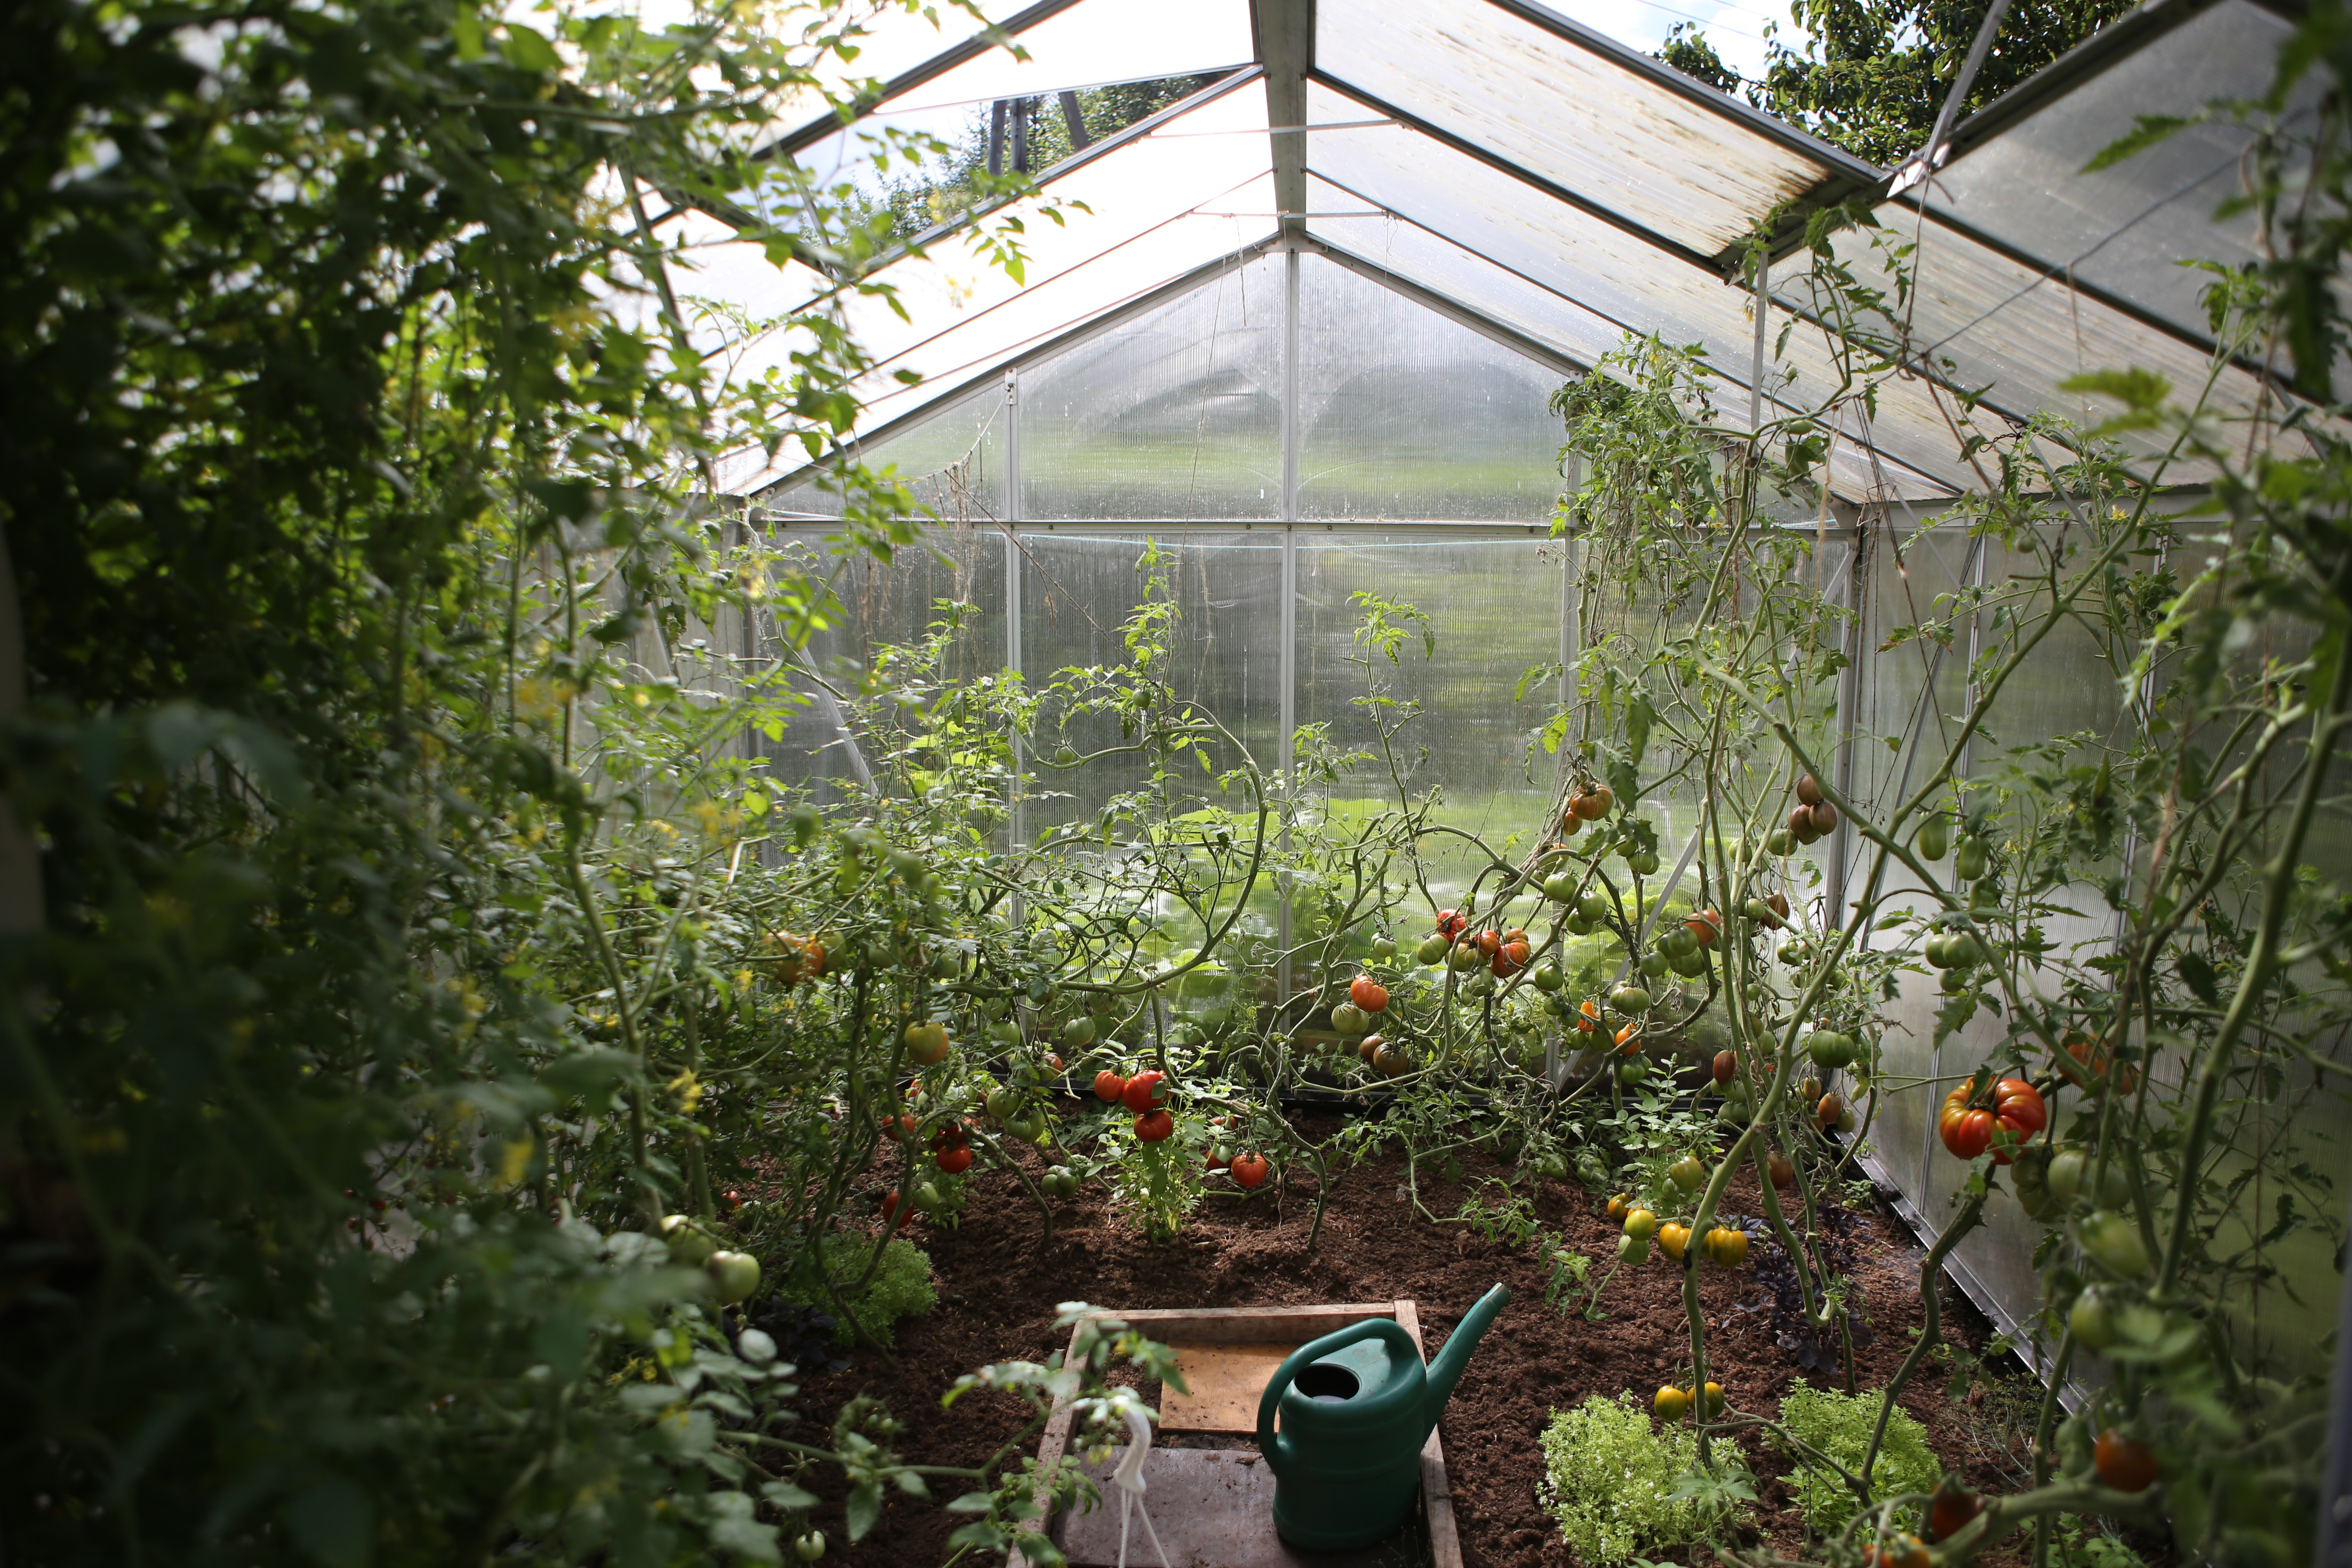 Image of a greenhouse with vegetables